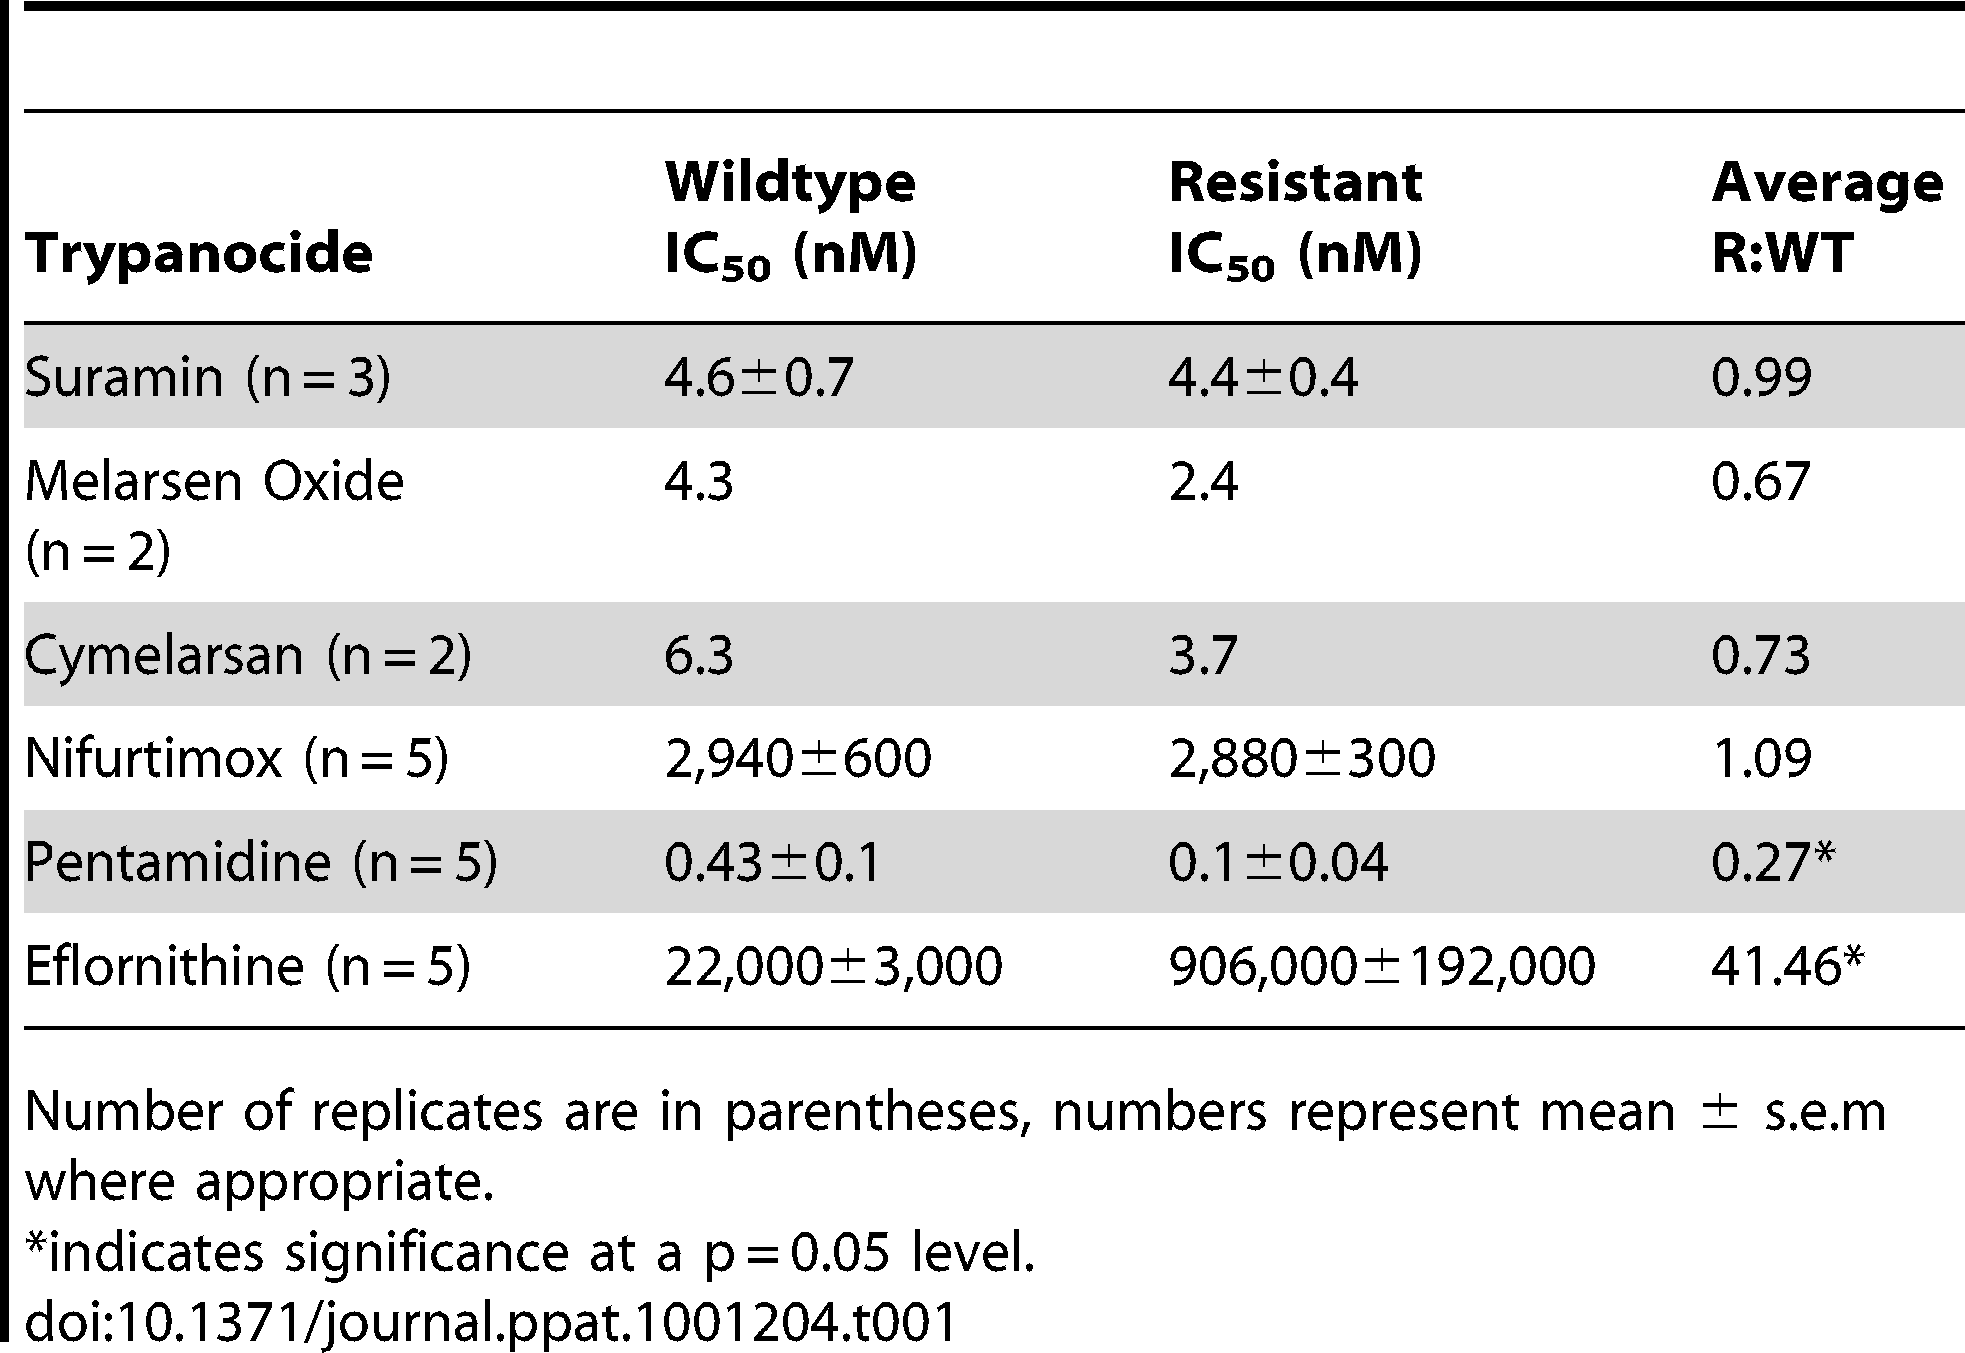 IC<sub>50</sub> values for known trypanocides on wildtype and eflornithine resistant cell lines.